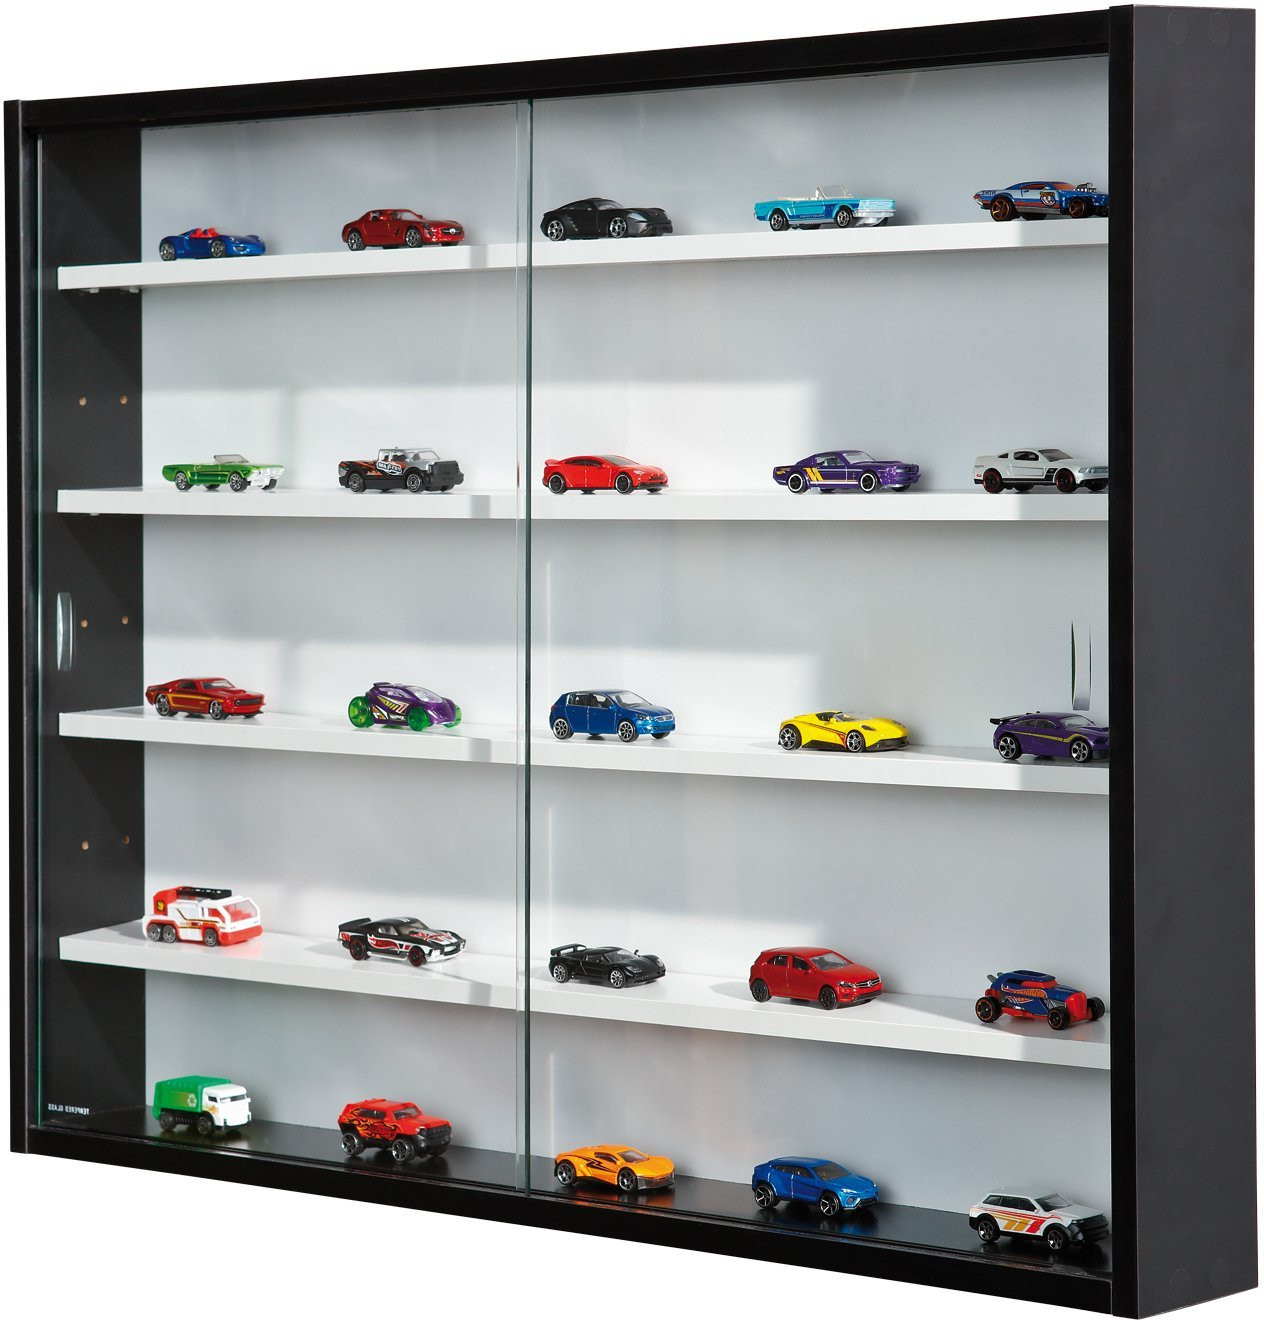 #AB2420 Display Cabinet Modern Storage Shelves Wall Glass Case Box  with 1264x1320 px of Recommended Glass Display Cases For Collectibles Australia 13201264 save image @ avoidforclosure.info